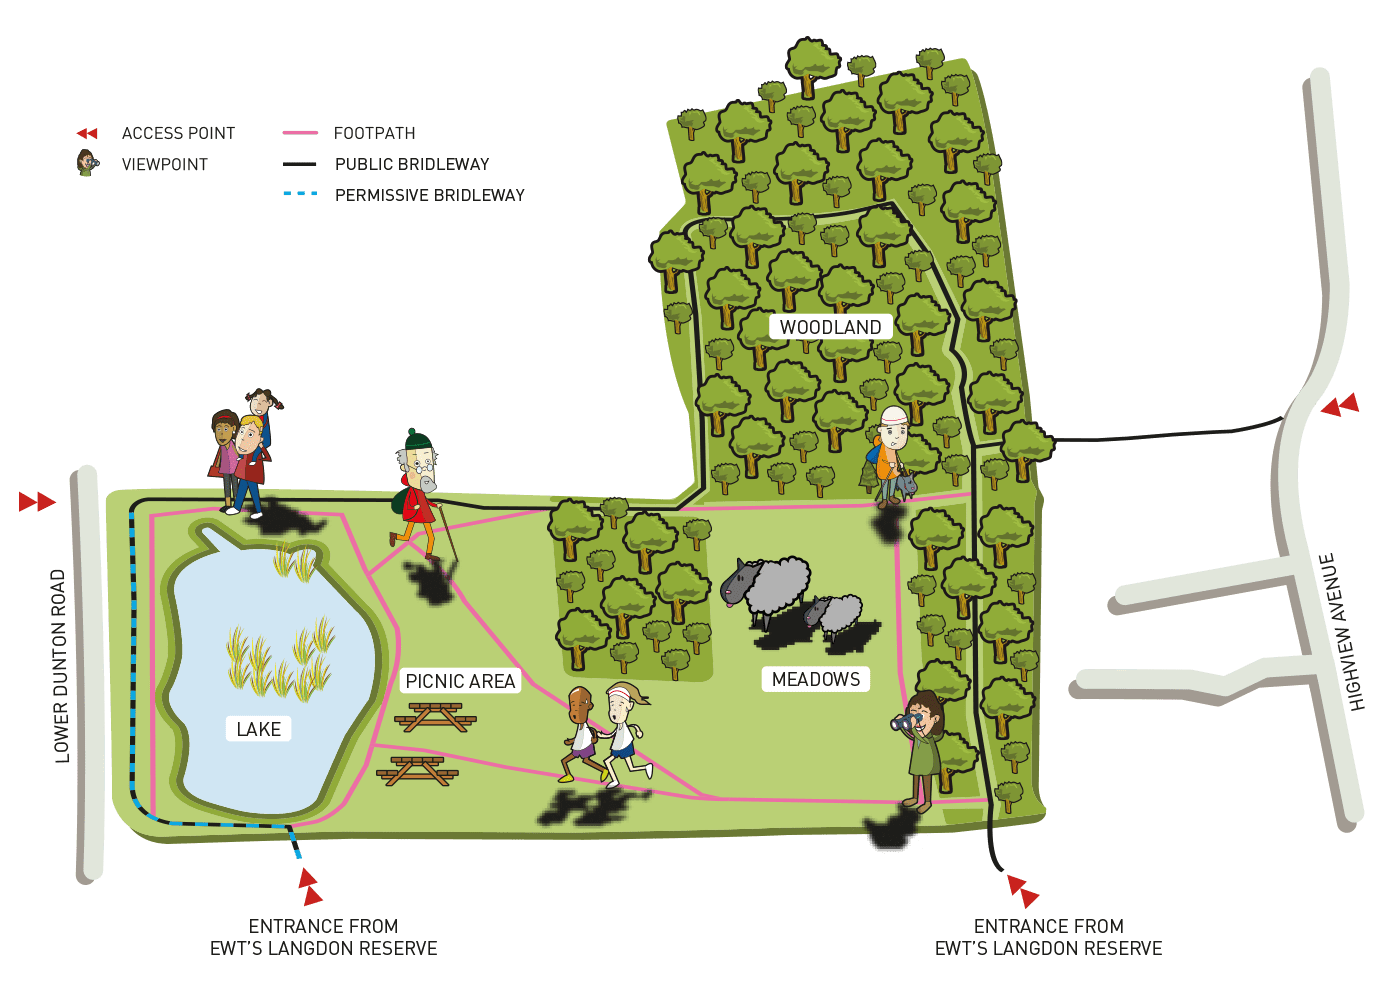 A site map graphic of The Land Trust's Langdon Lake nature reserve